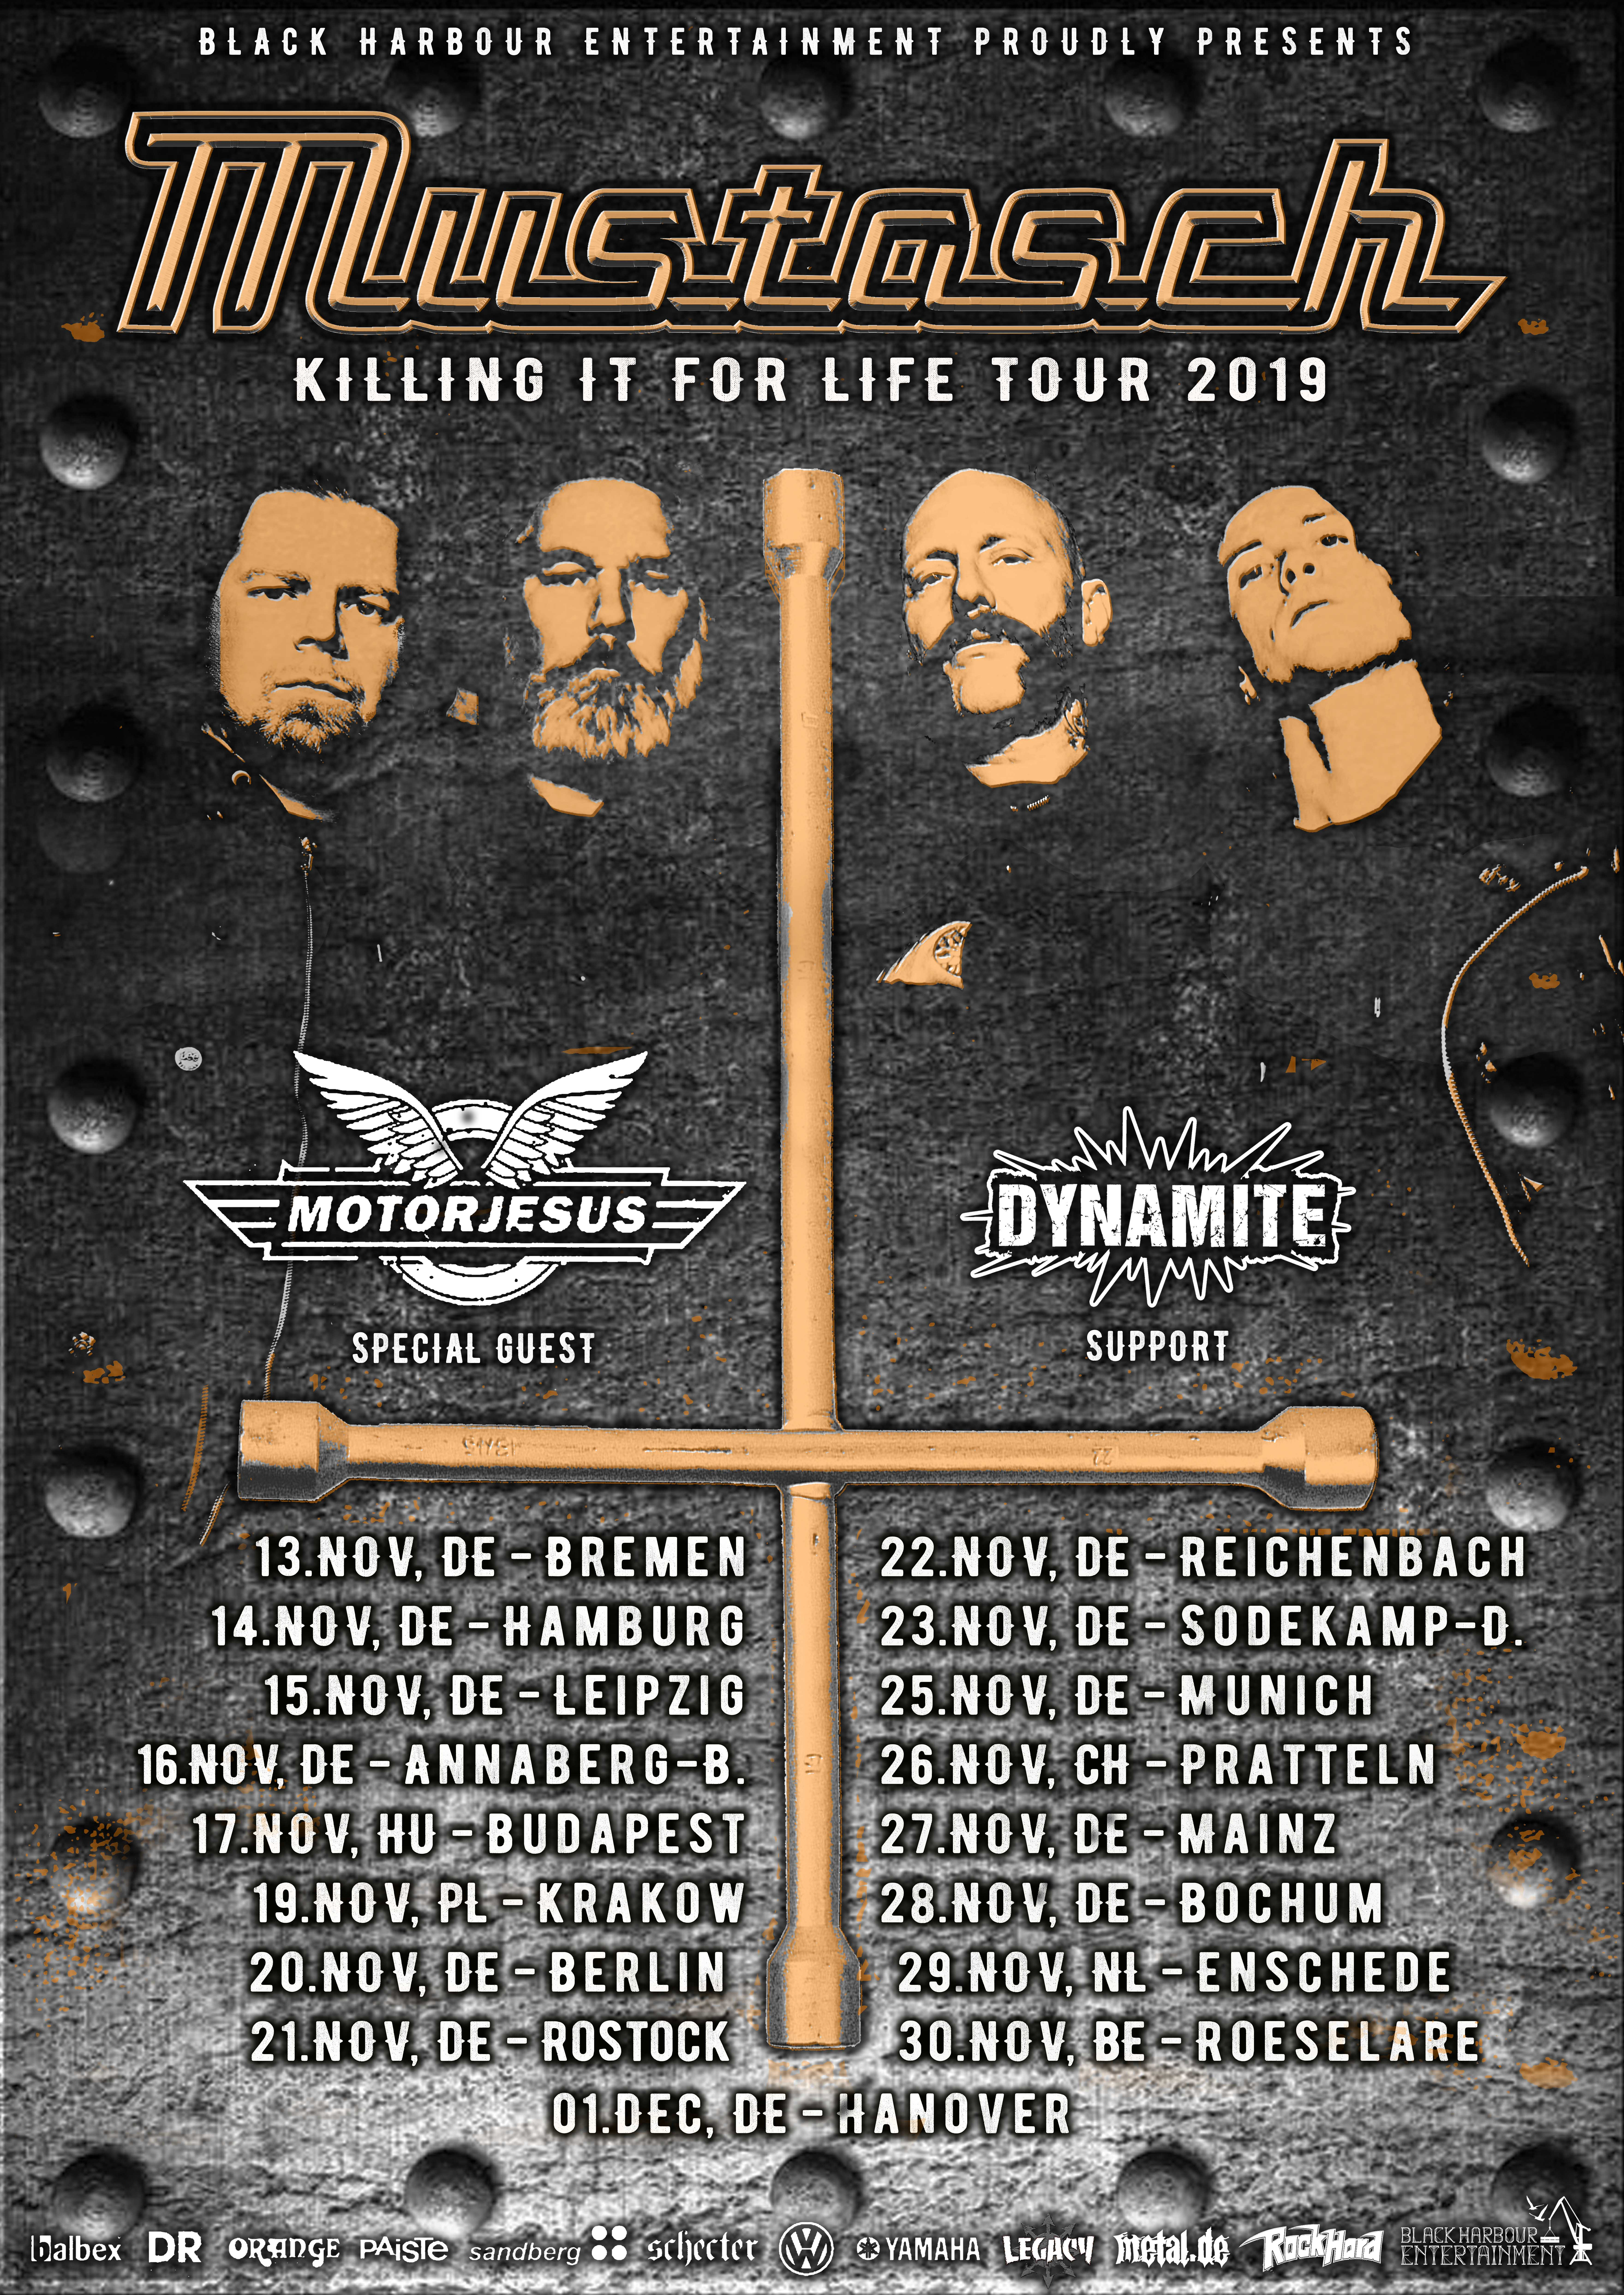 Mustasch Killing For Live Tour 2019